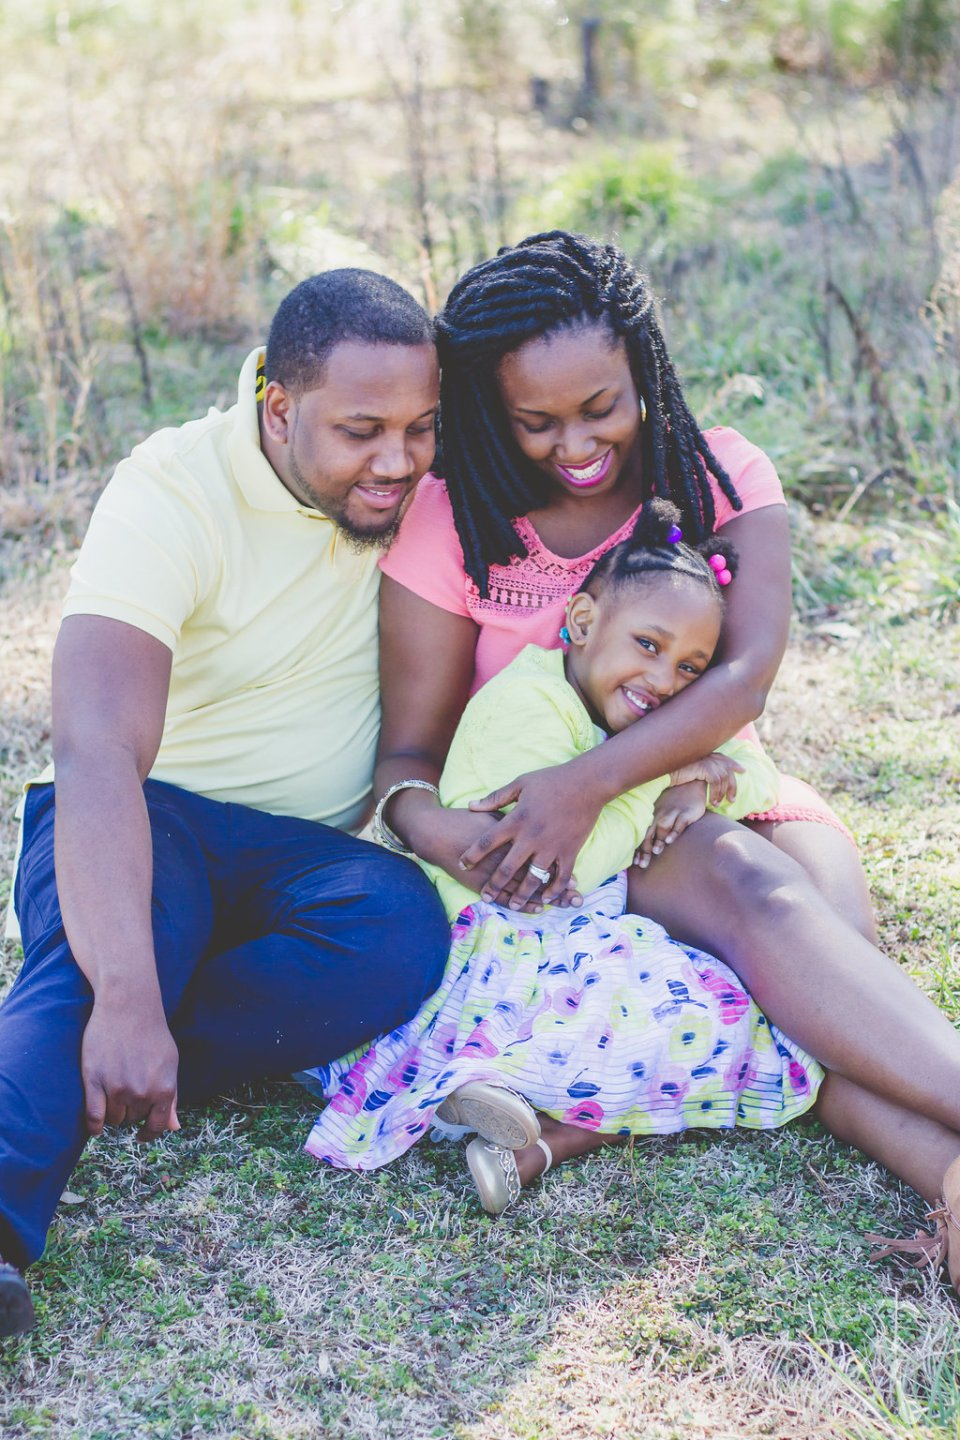 family-22-960x1440 Raleigh, NC Family Brings Spring to Life in Photoshoot